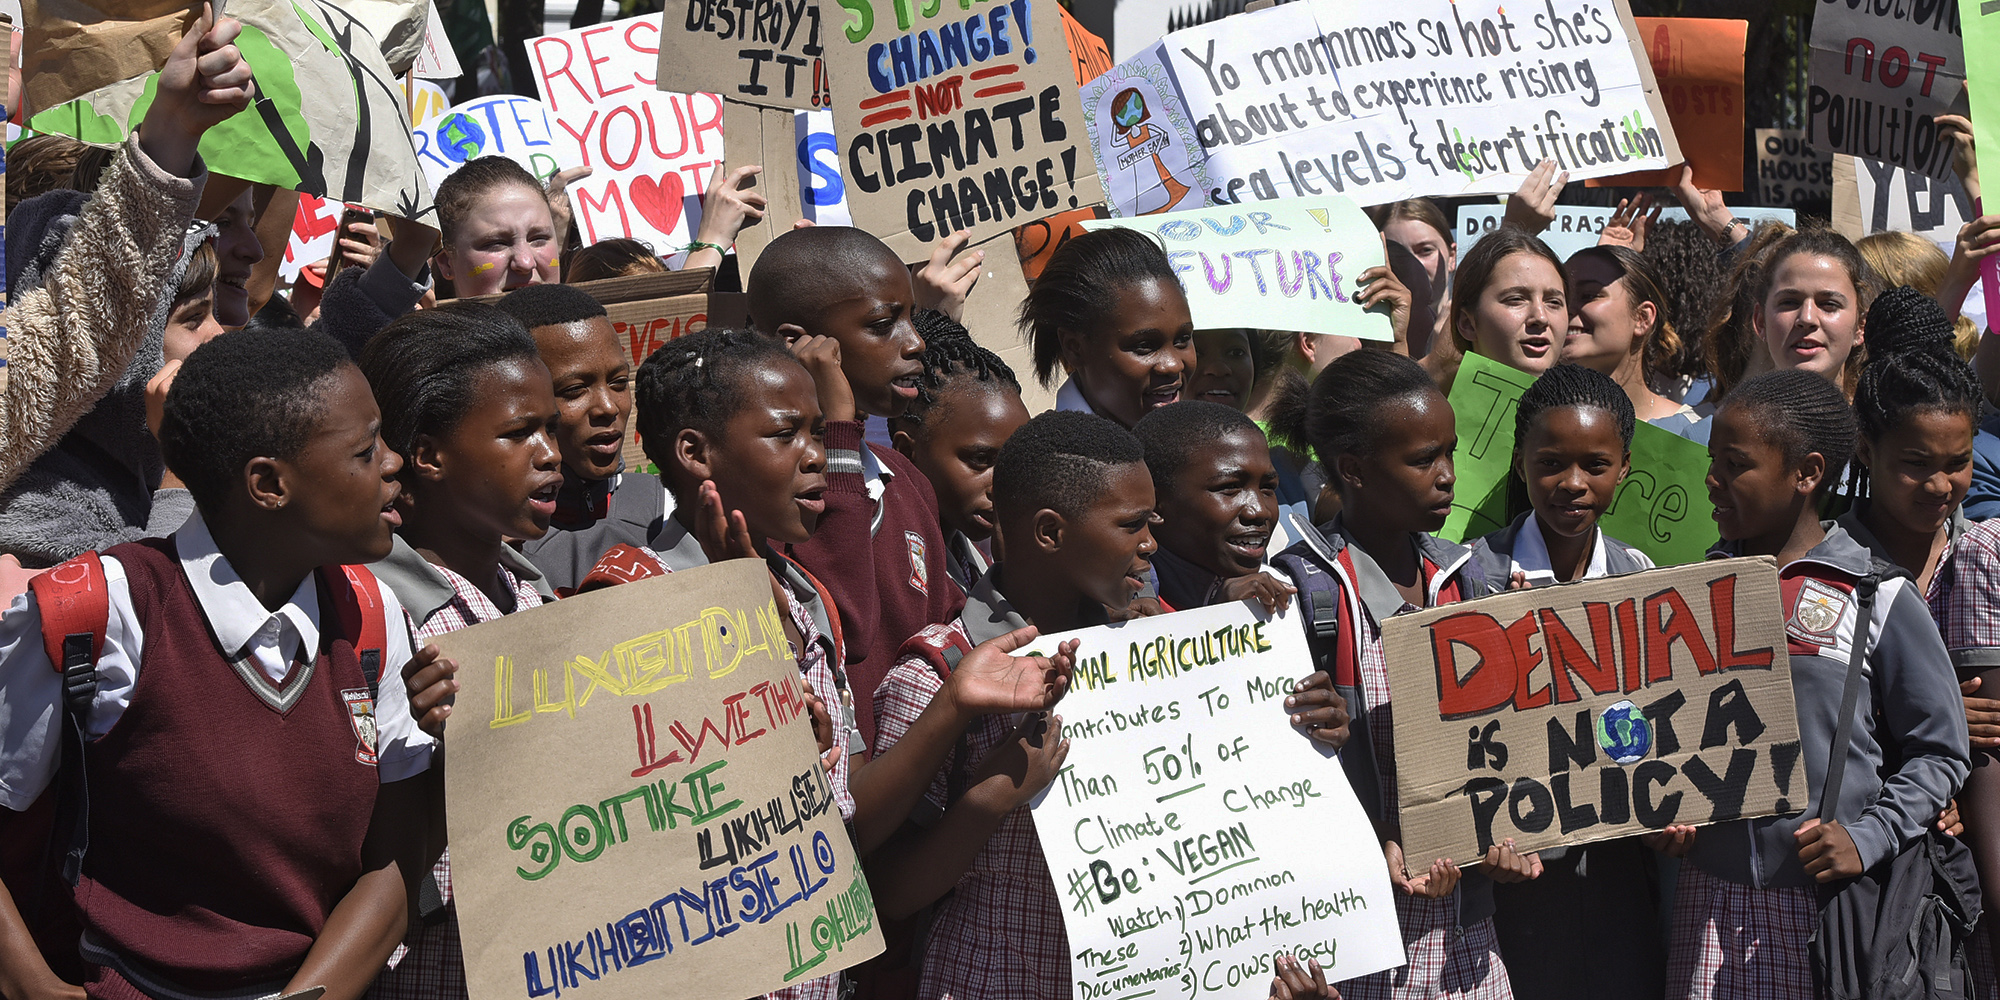 Global Strike Countdown: Change climate change and give us, the youth, a future